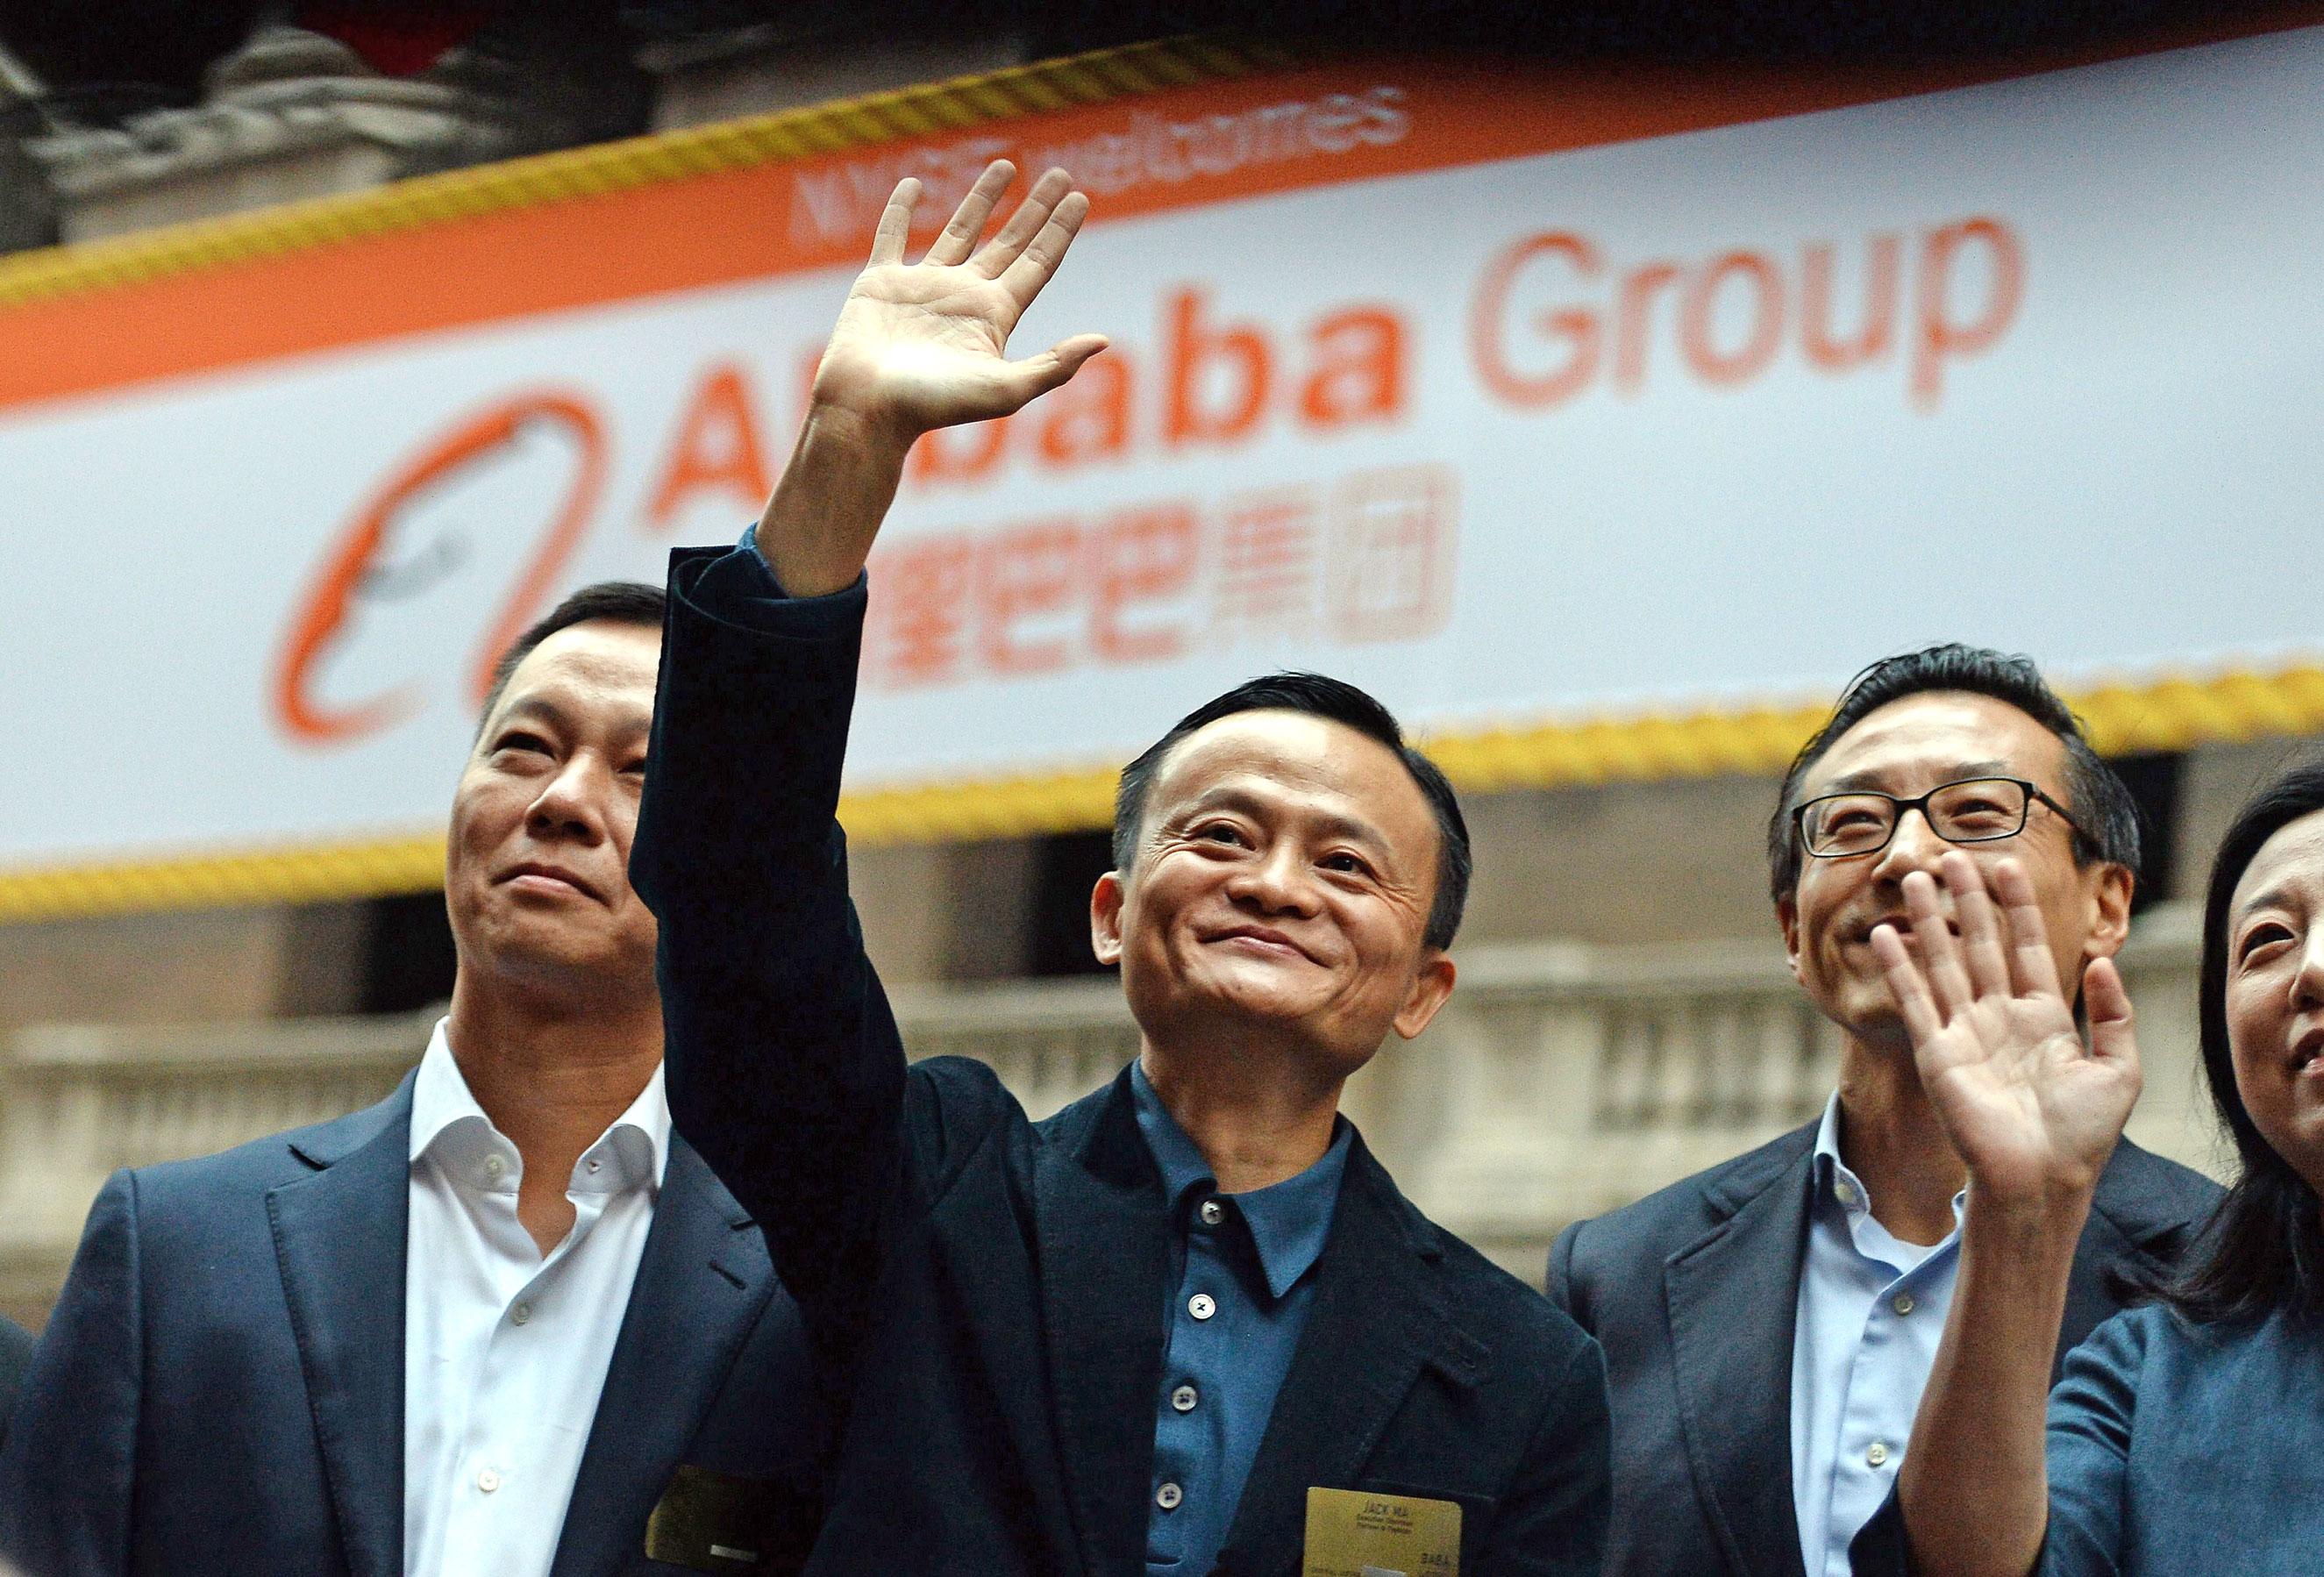 Chinese online retail giant Alibaba's executive chairman and founder Jack Ma (center) waves as he arrives at the New York Stock Exchange in New York City on Sept. 19, 2014.